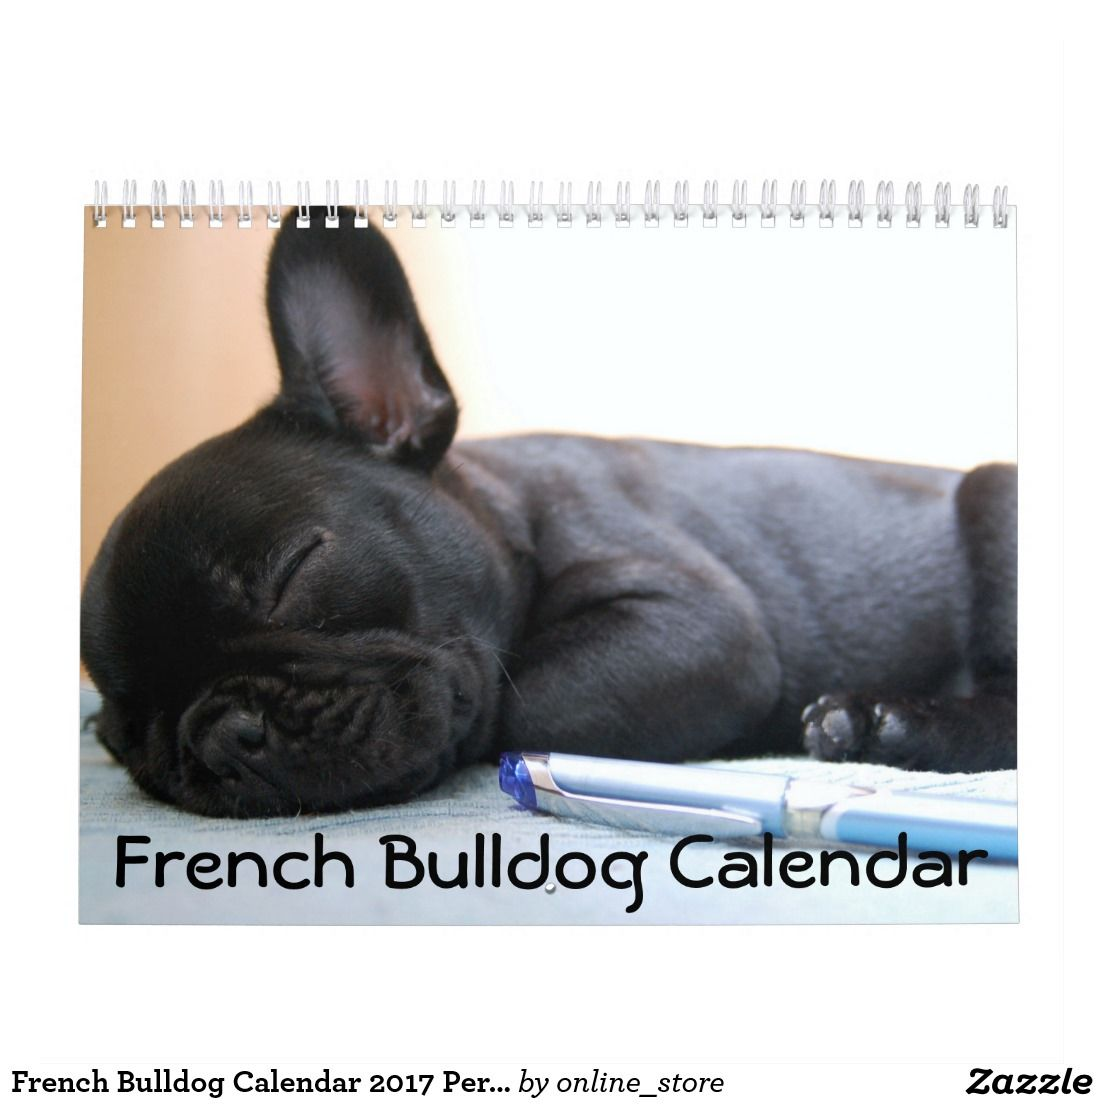 French Bulldog Calendar 2020 Personalized Zazzle Com French